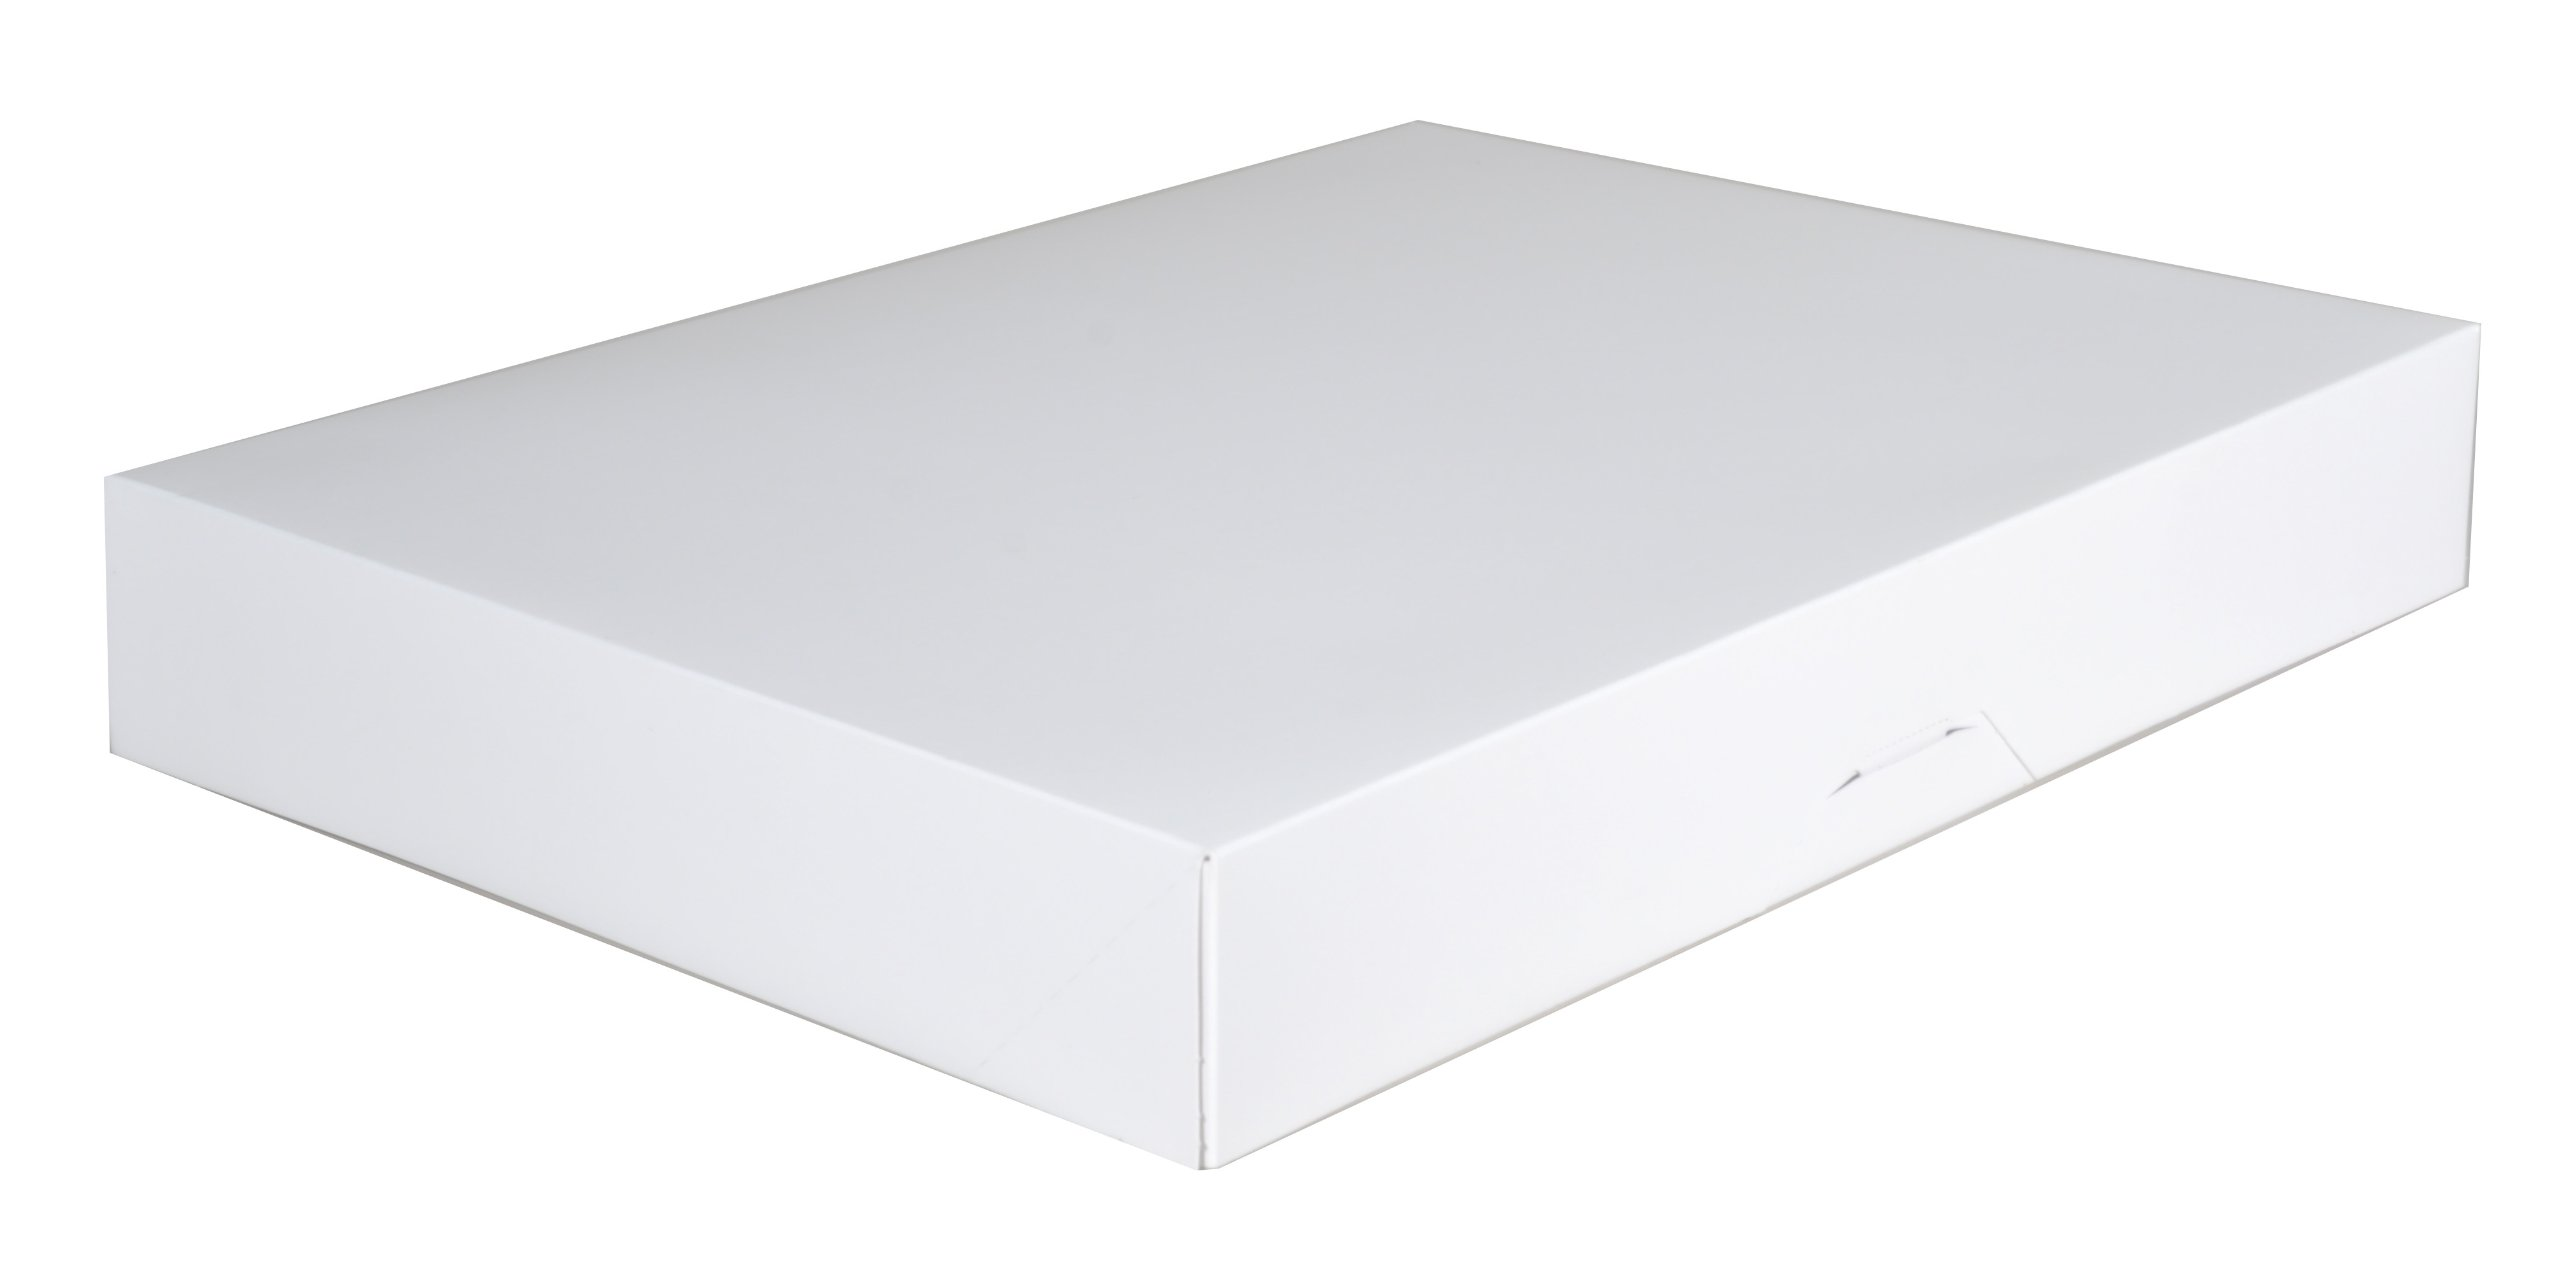 Southern Champion Tray 1239 Paperboard White Bakery Donut Box, 15'' Length x 11-1/2'' Width x 2-1/4'' Height (Case of 100)